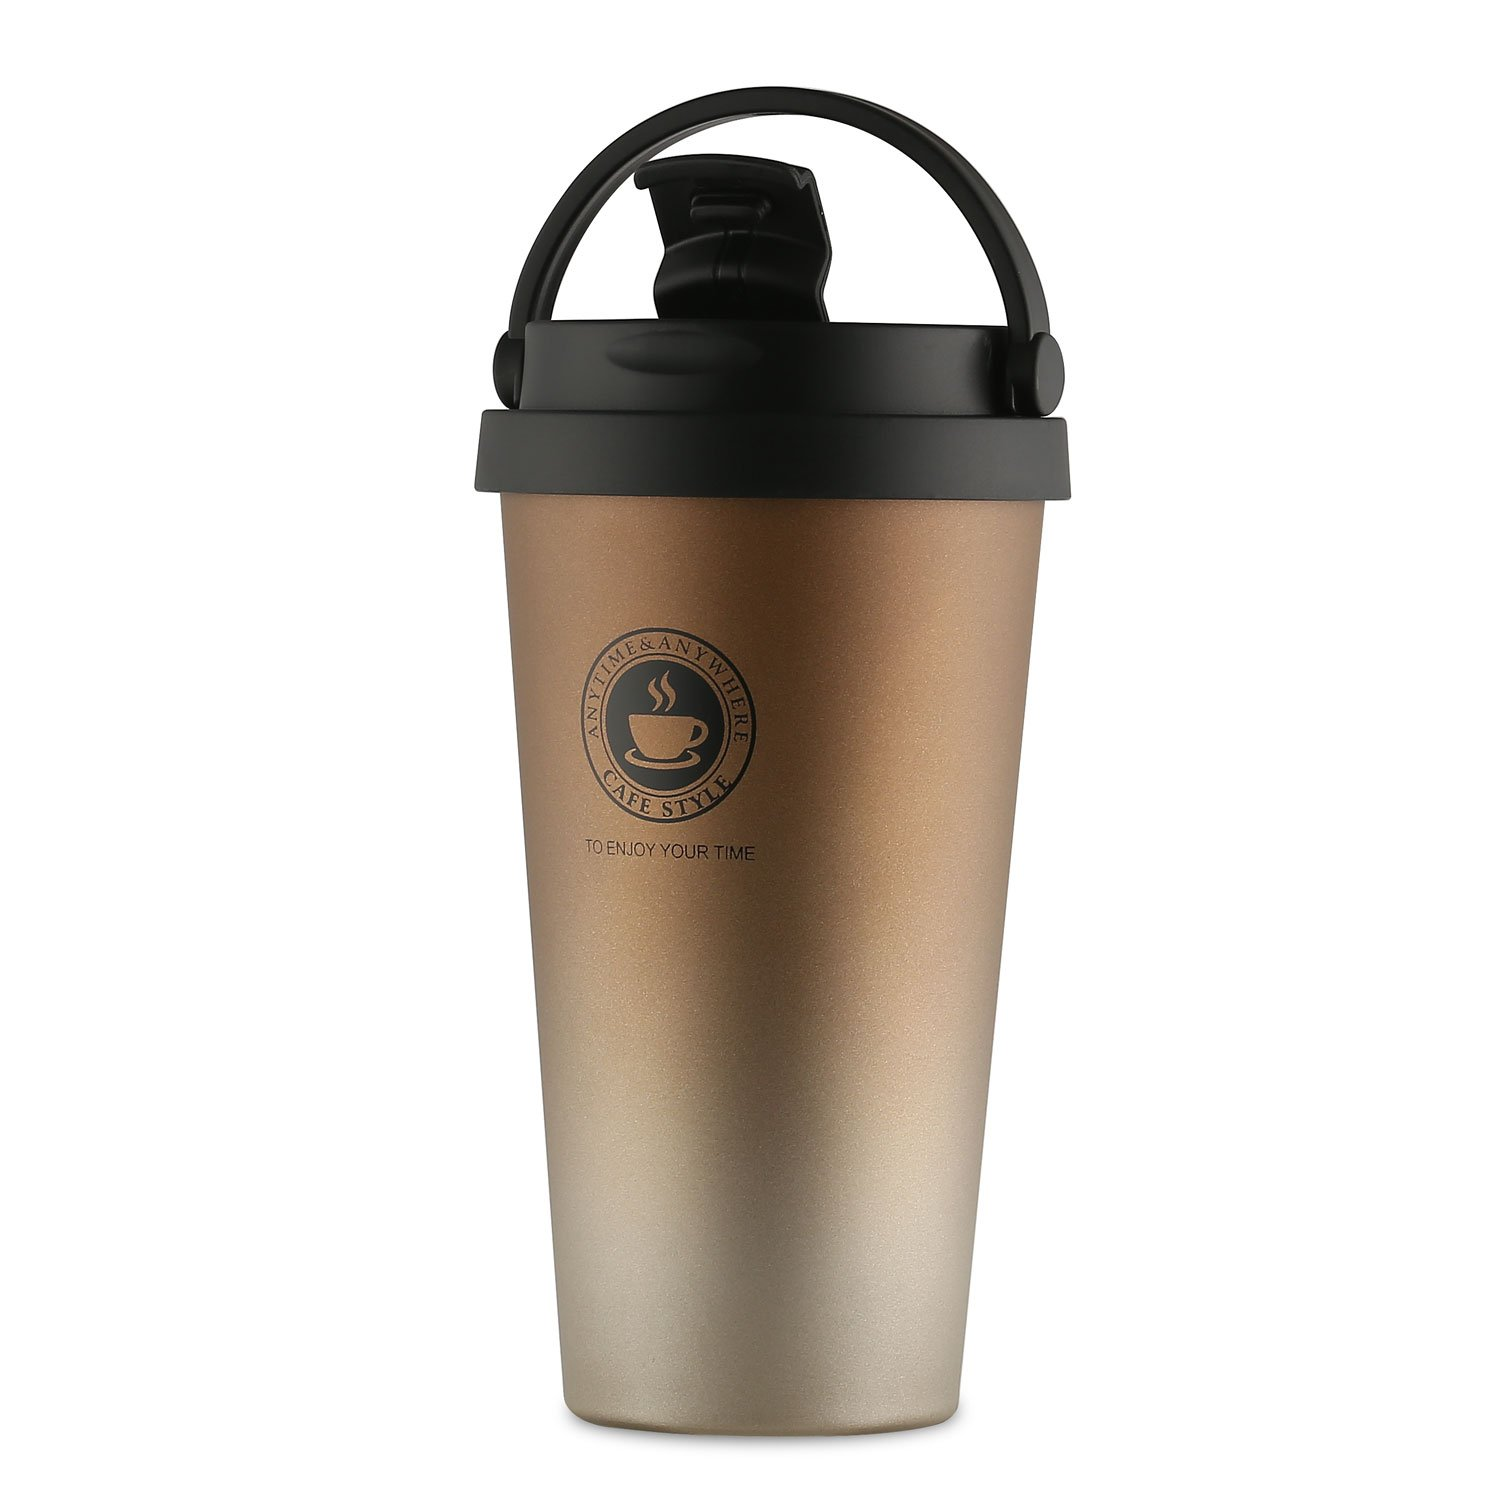 Home / portable Stainless Steel Coffee Mug Insulation / cold Beer Cup acuum Insulated Double-Walled 18/8 Stainless Steel Hydro Travel Mug Coffee color 17OZ (500ml) by SEPT MIRACLE (Image #3)